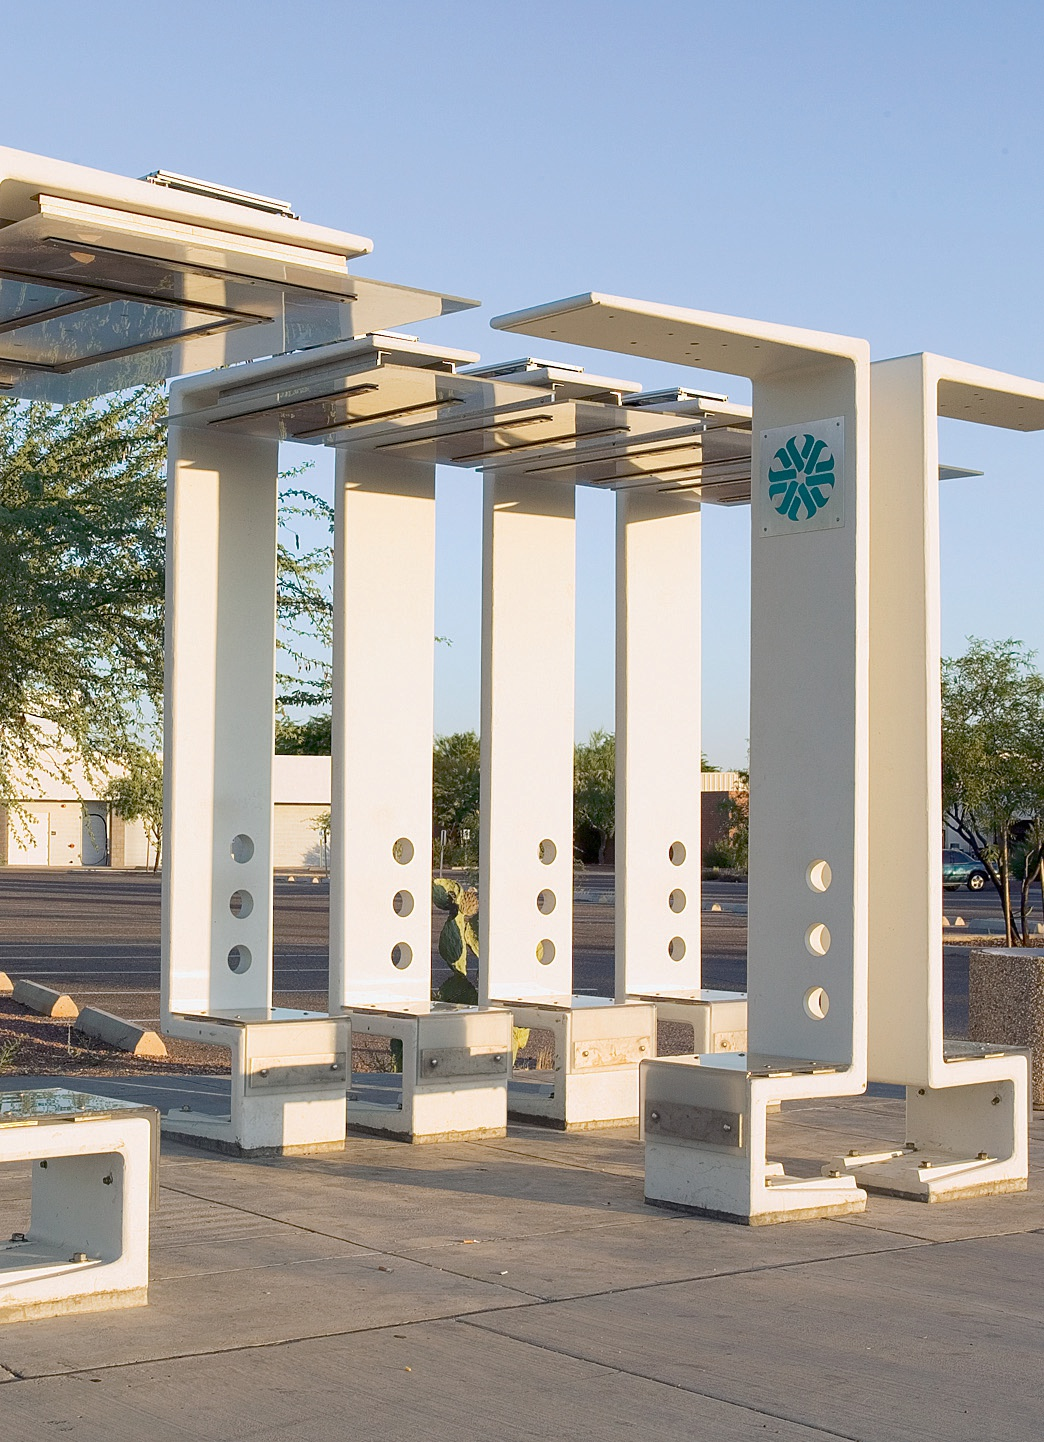 Line and Space LLC Architects won a design competition for new bus-stop furnishings in Tucson, Ariz. Their modular solution was constructed with Ductal to assure low maintenance, high visibility and durability against extreme heat.